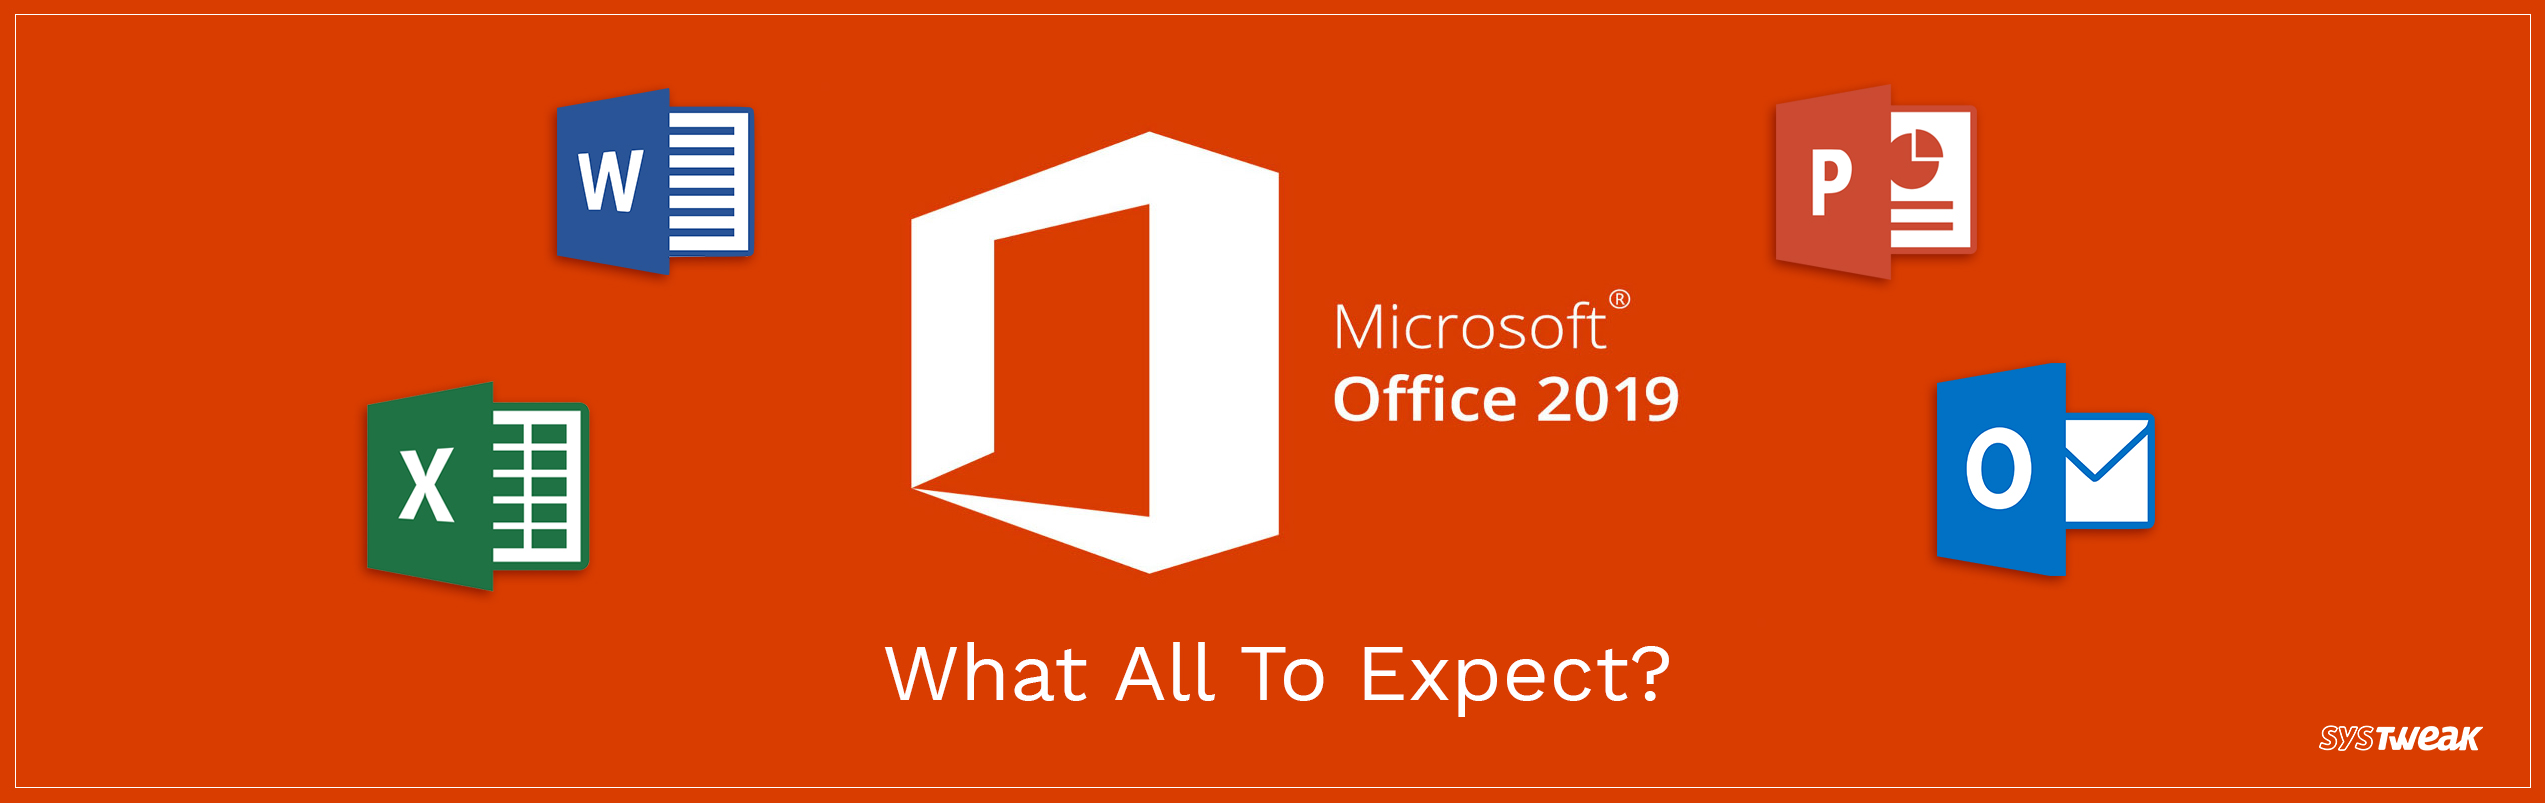 Microsoft Office 2019: Here's What All to Expect!